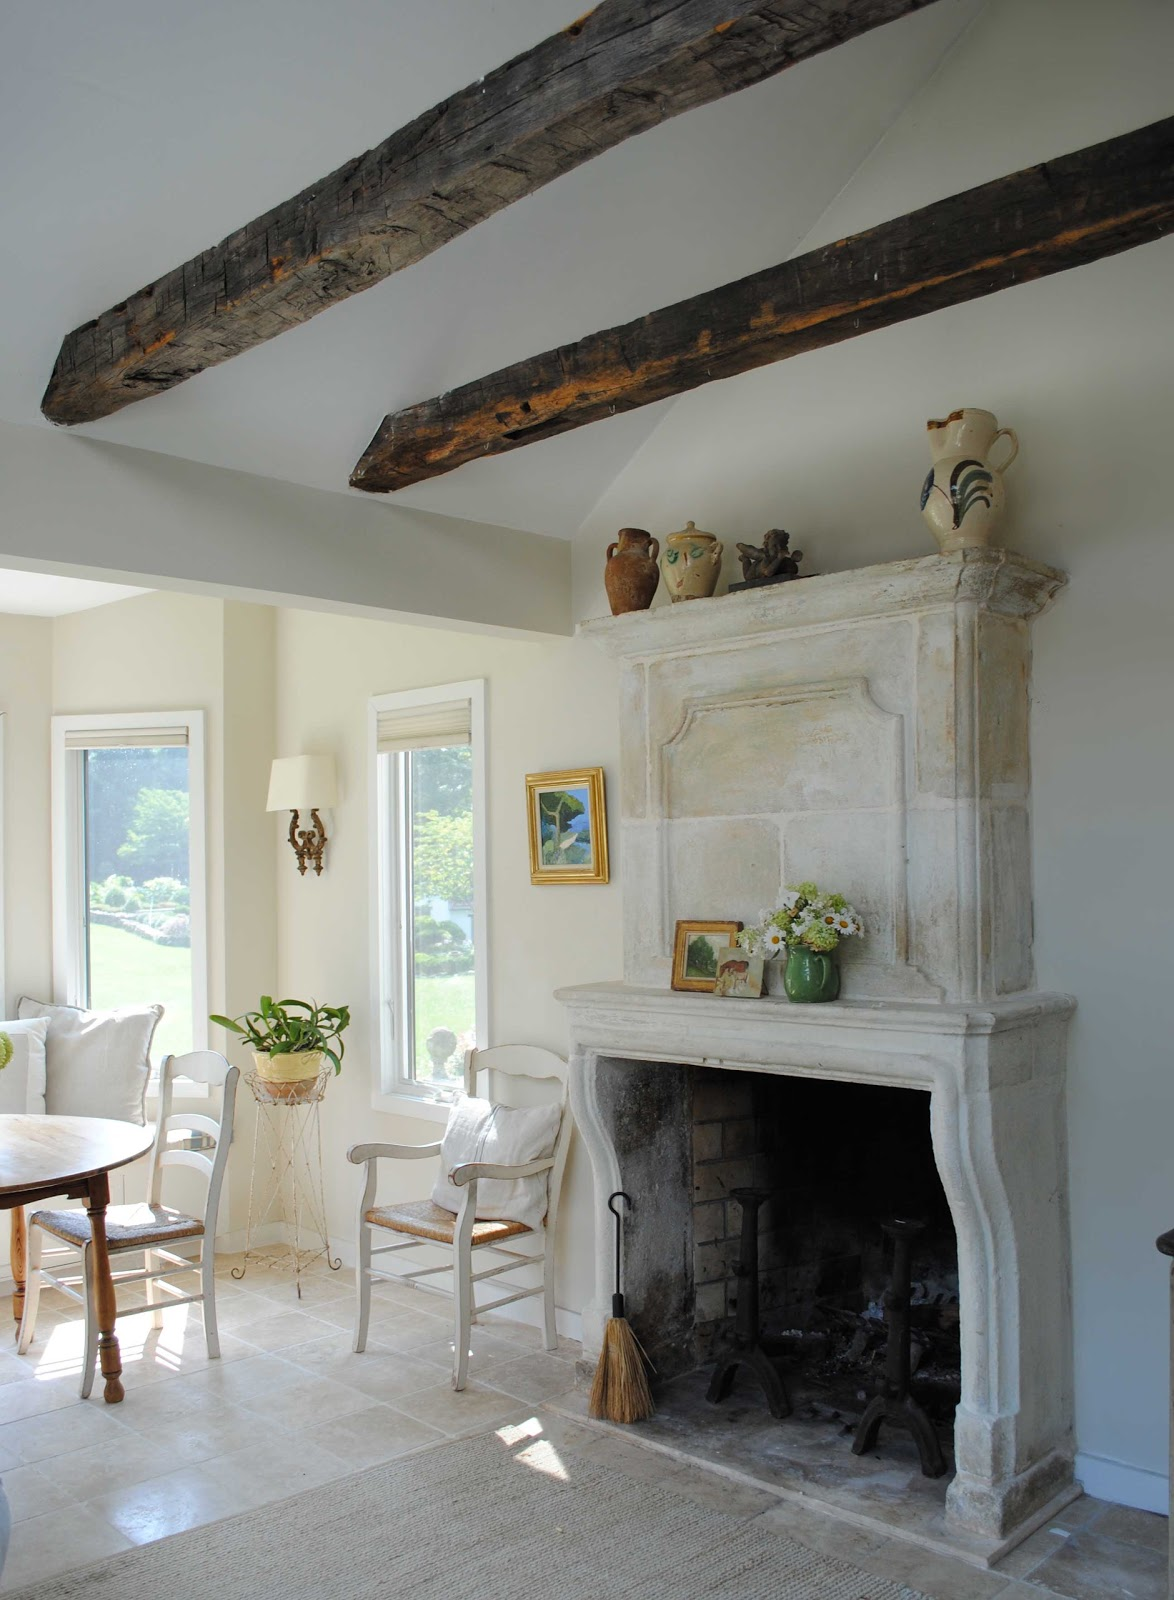 tone on tone a comfortable home enlivened with art